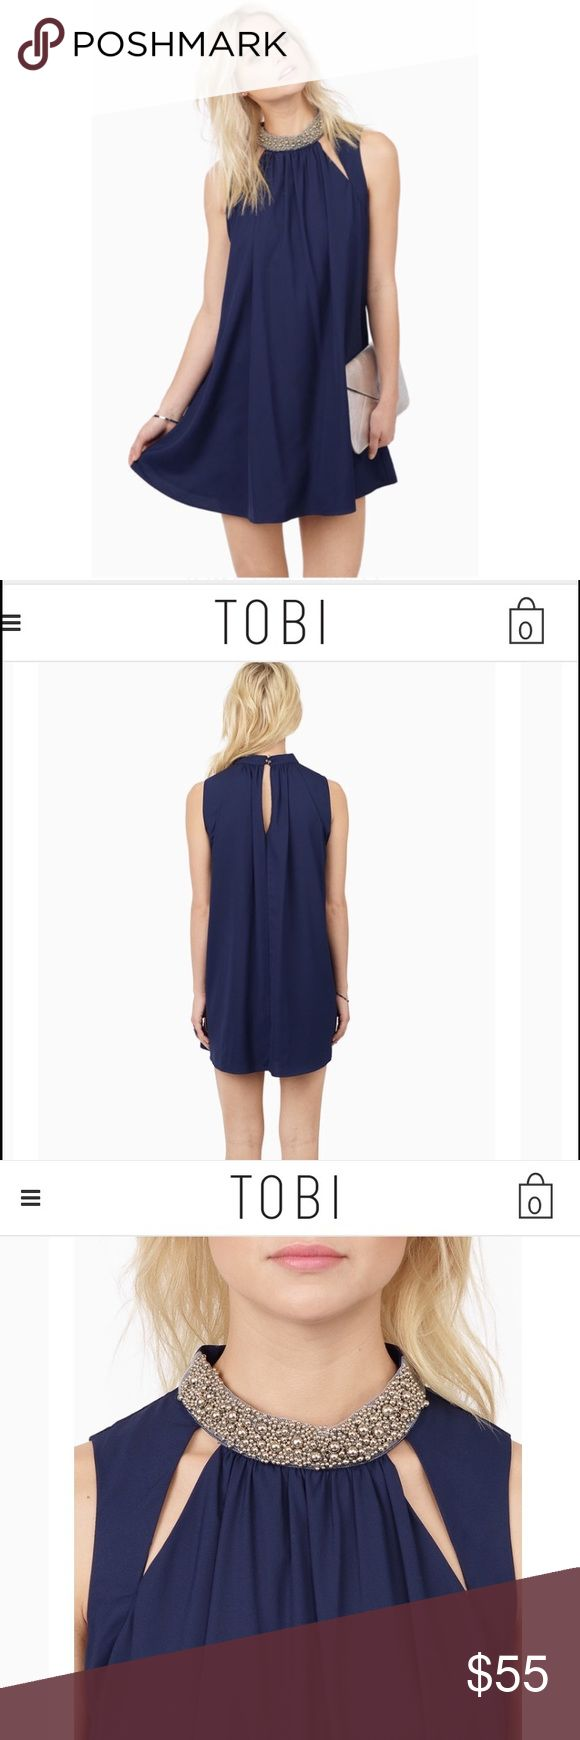 New navy trapeze dress from Tobi Brand new baby trapeze dress. Embellishments at collar. Either casual or dressy. Tobi Dresses Mini